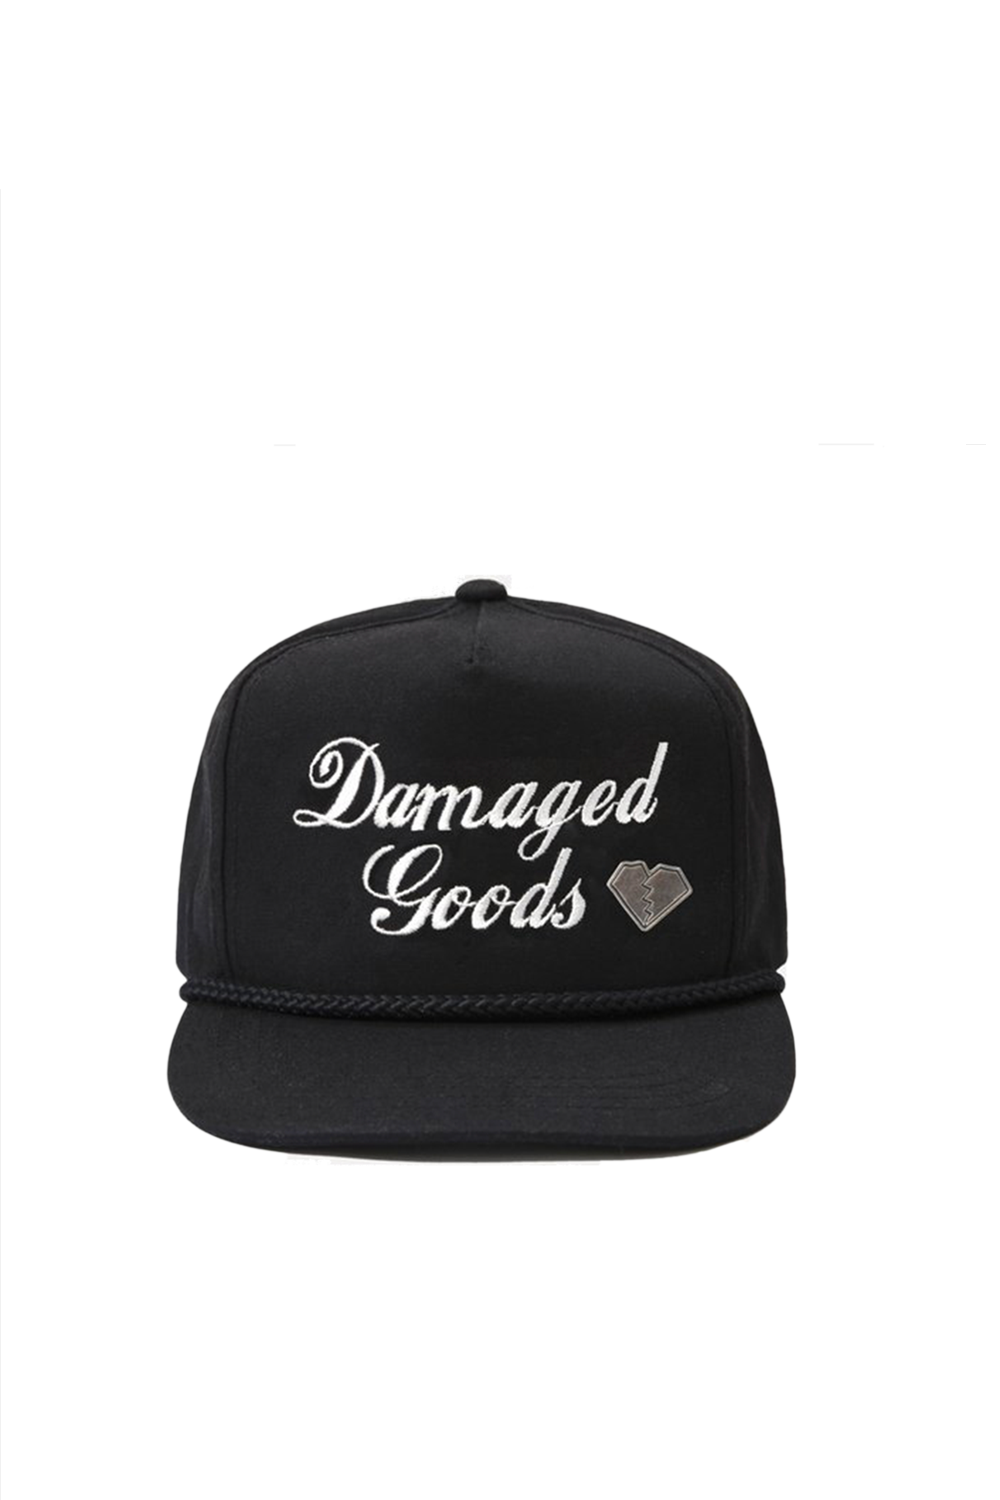 DAMAGED GOODS CAP